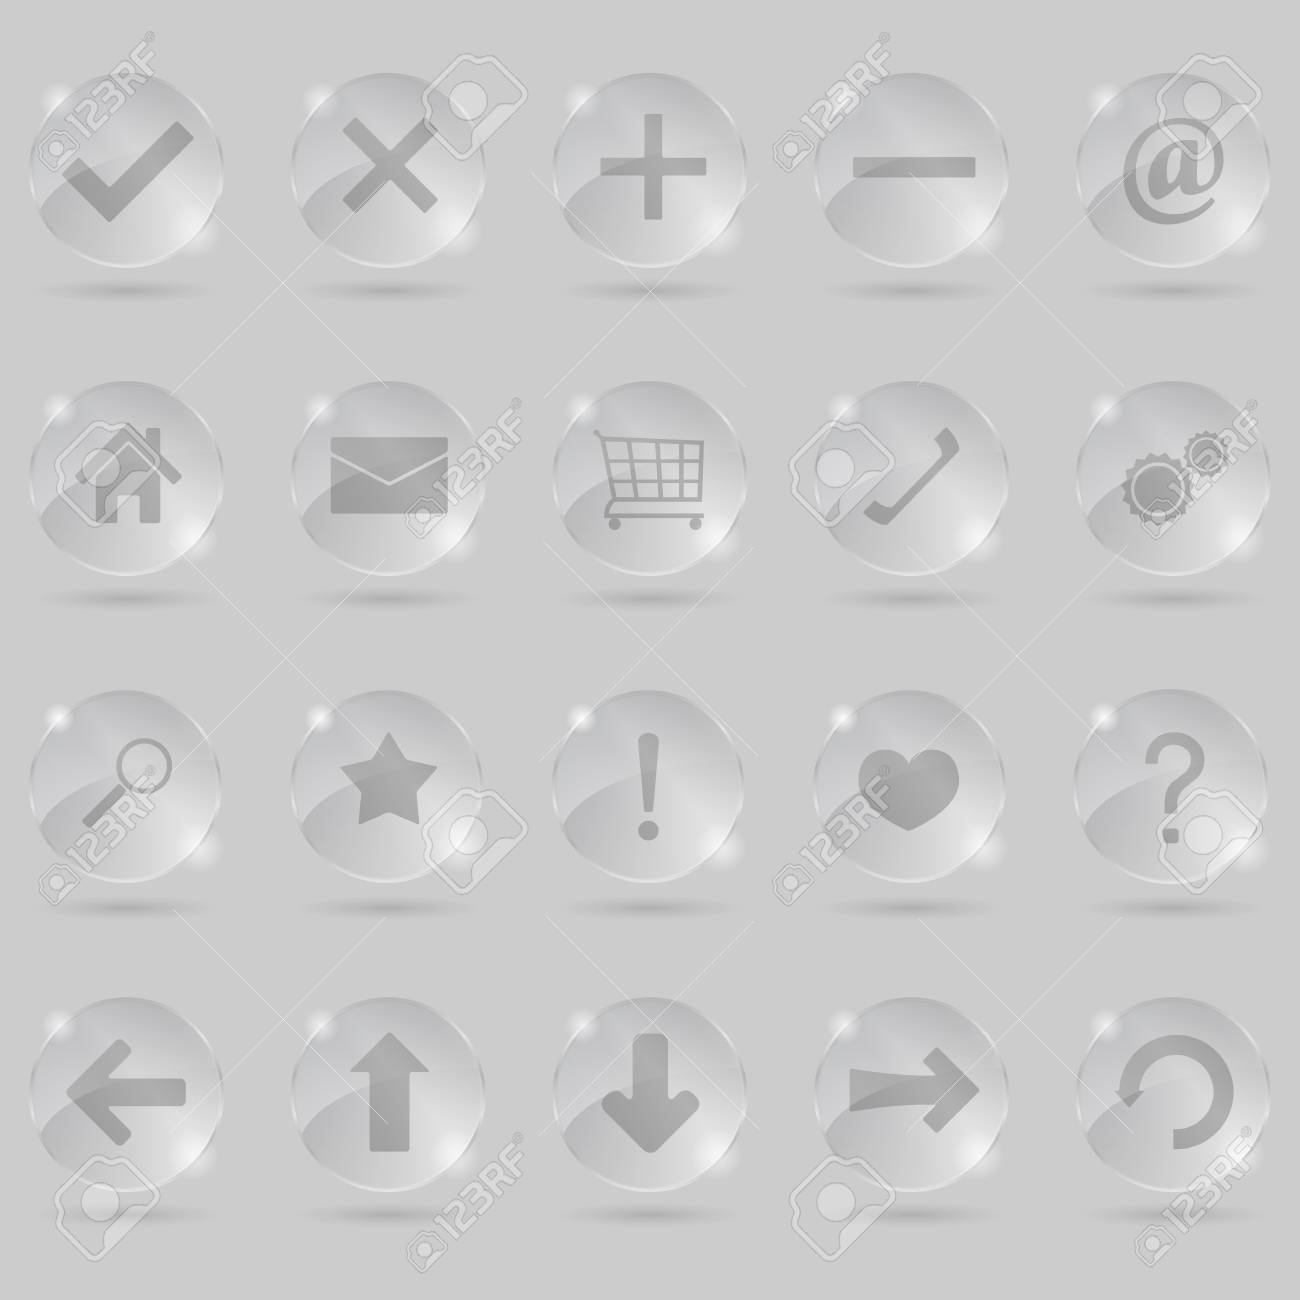 Set of glass icons Stock Vector - 12483541